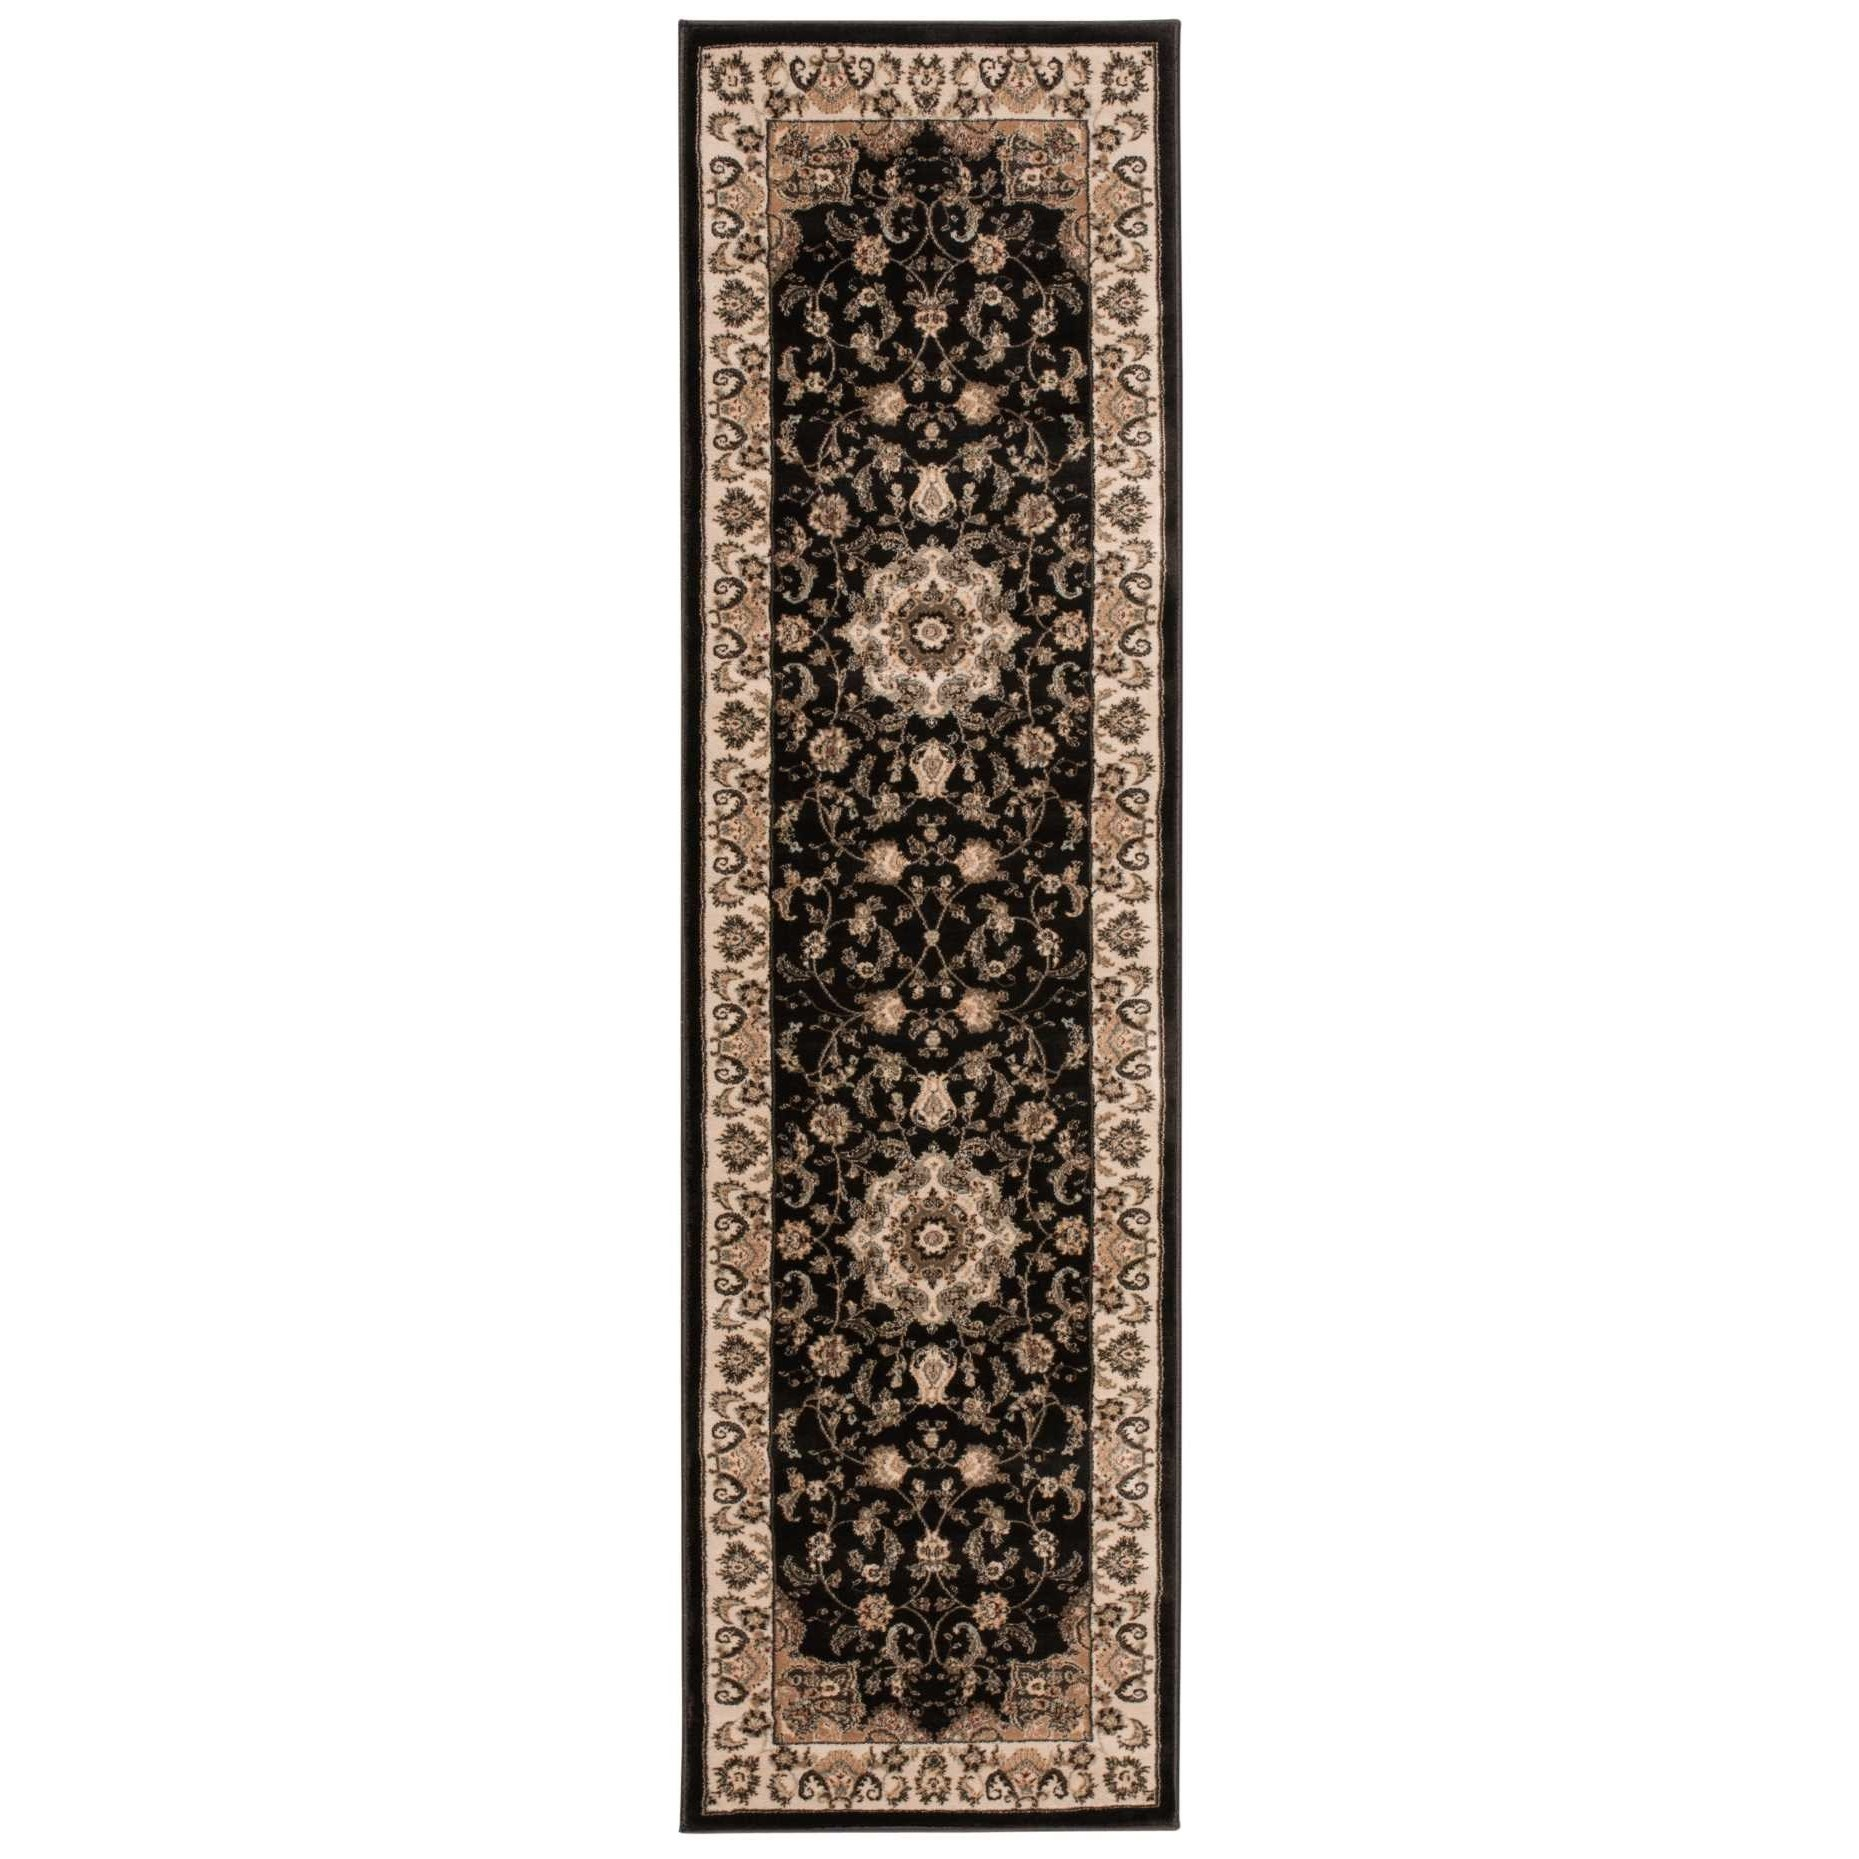 "Ararat 2'2"" x 7'6"" Charcoal Runner Rug by Nourison at Sprintz Furniture"